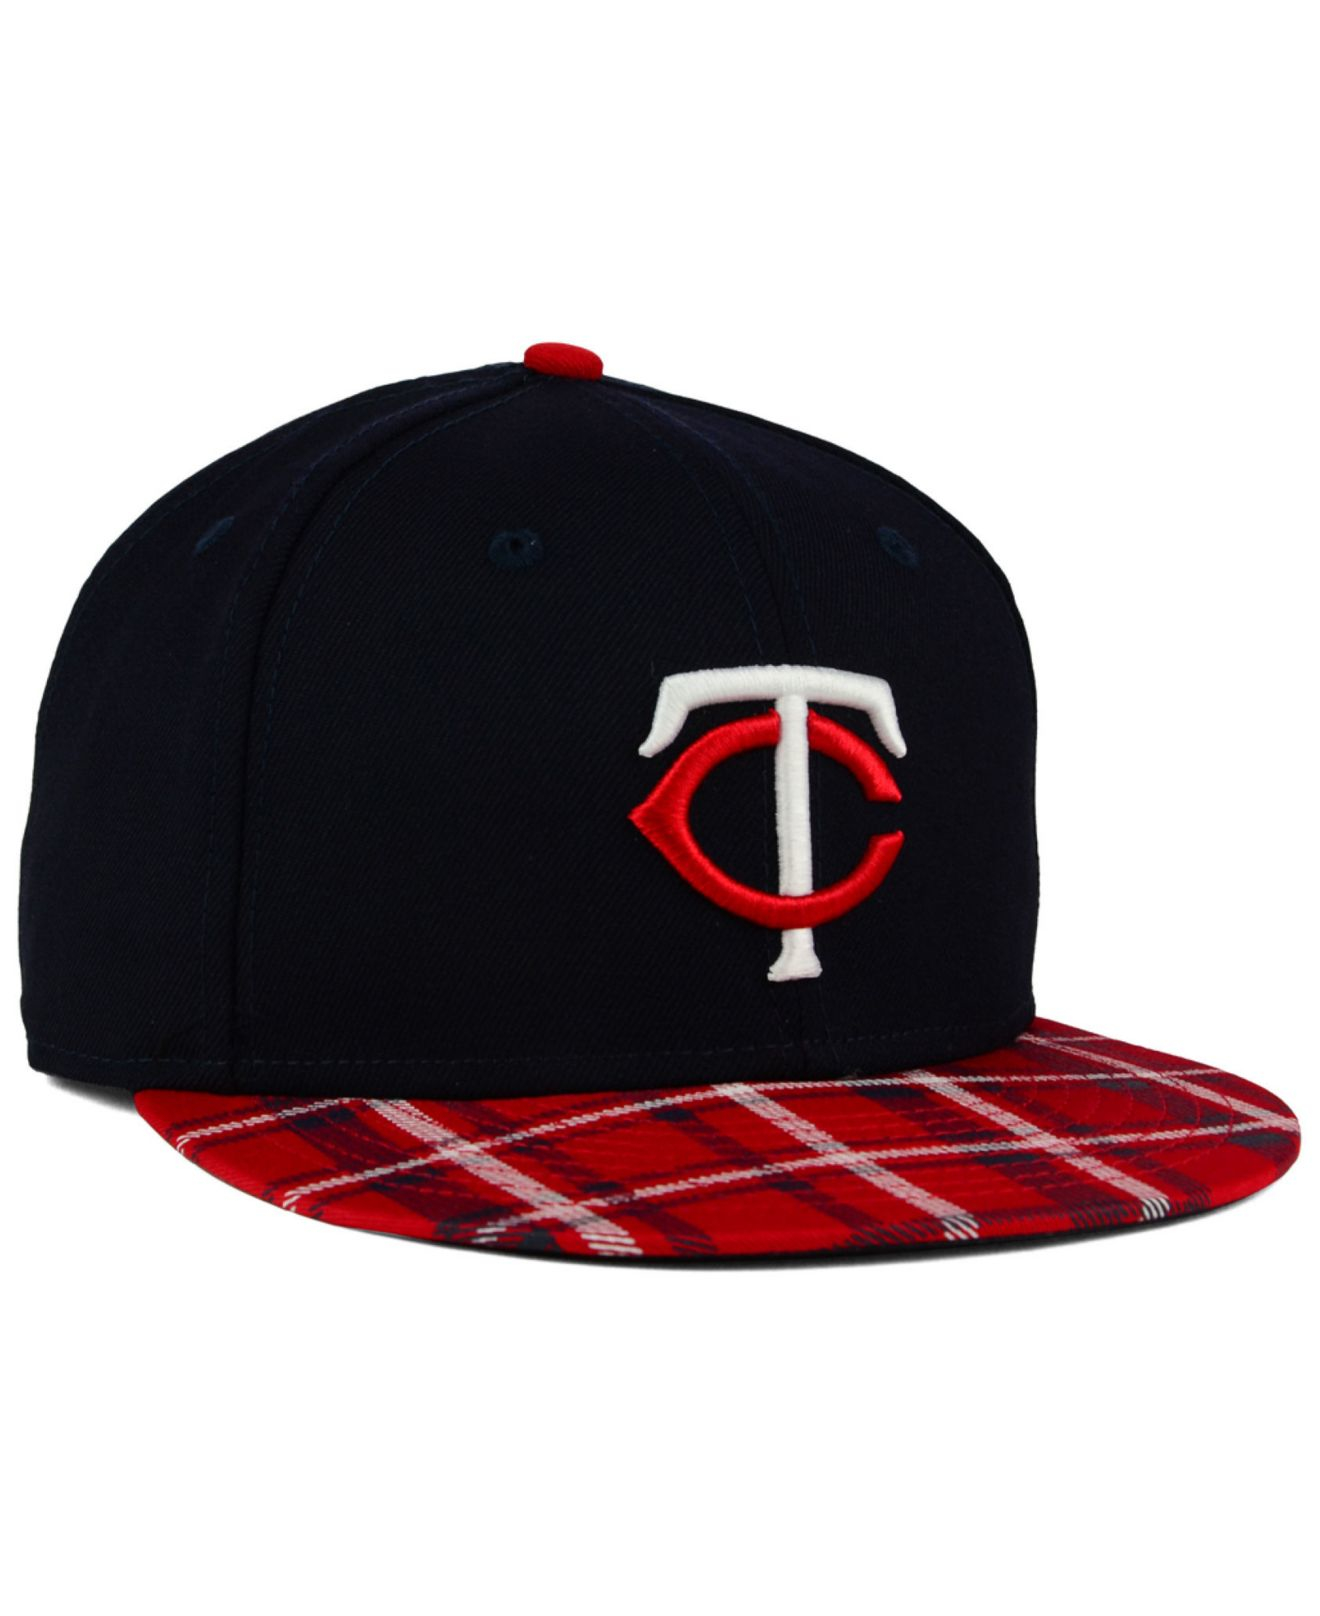 cheap for discount a7cba 0bd5f ... promo code lyst ktz minnesota twins plaid 9fifty snapback cap in blue  for men 3a4e2 4248c